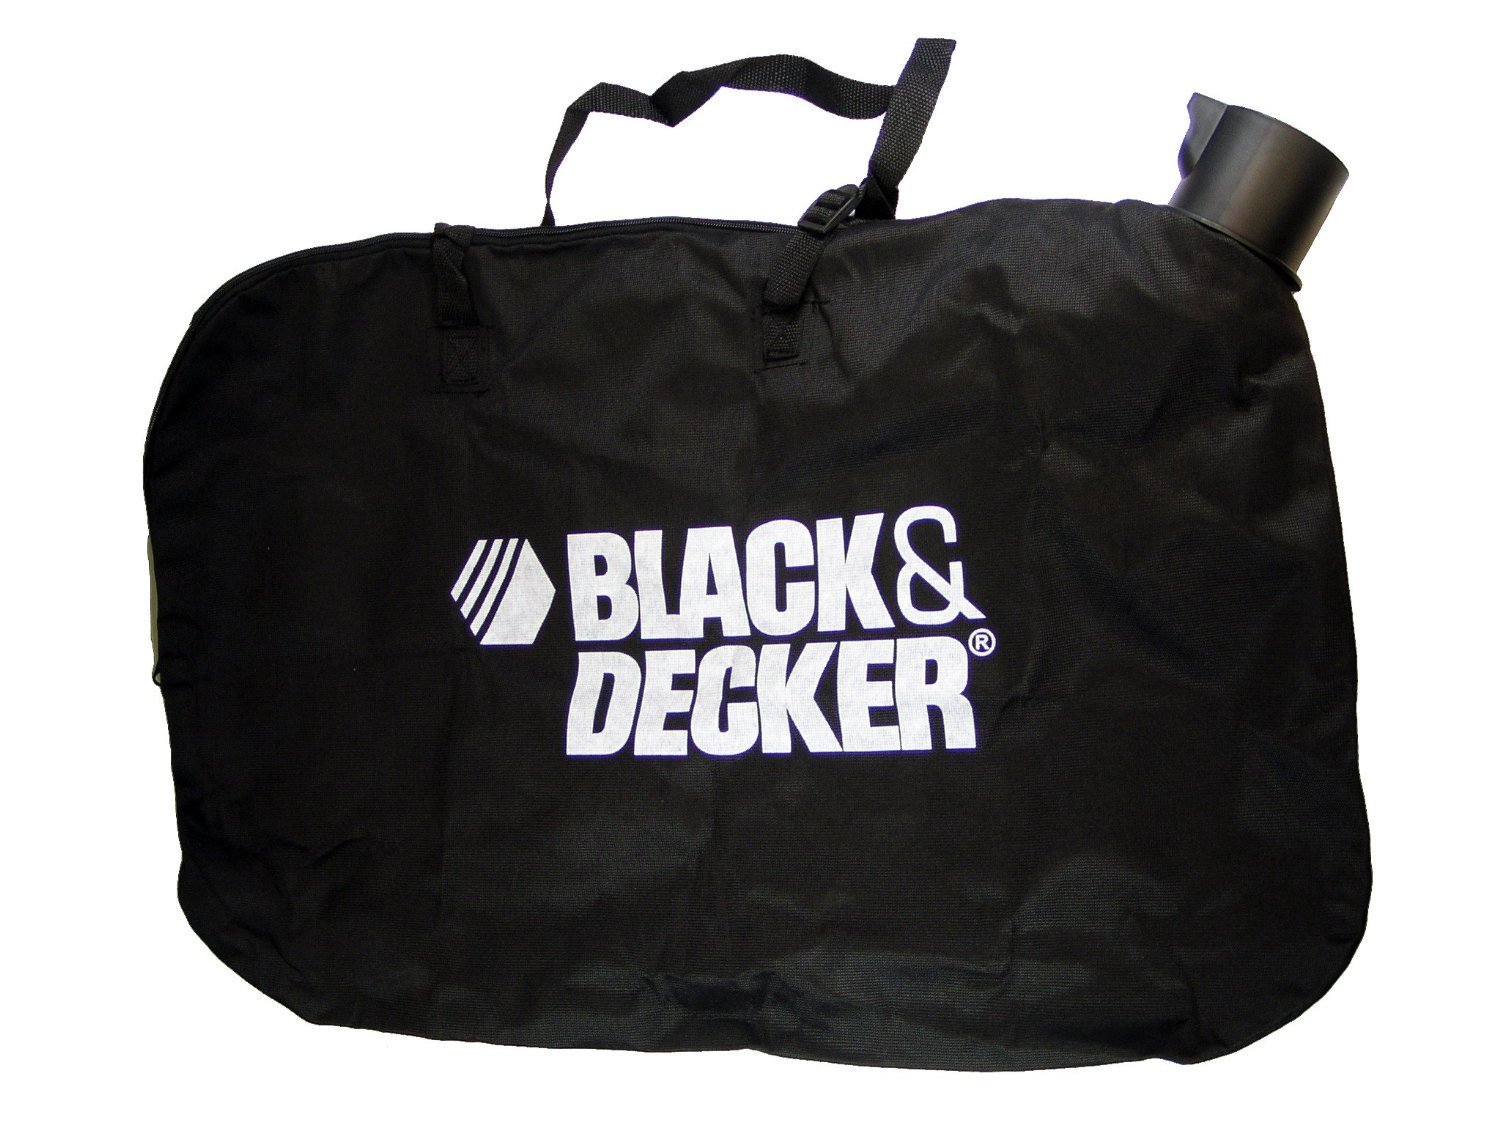 Black & Decker 90560020 2-Pack leaf blower vacuum vac shoulder bag BV3600 LH4500